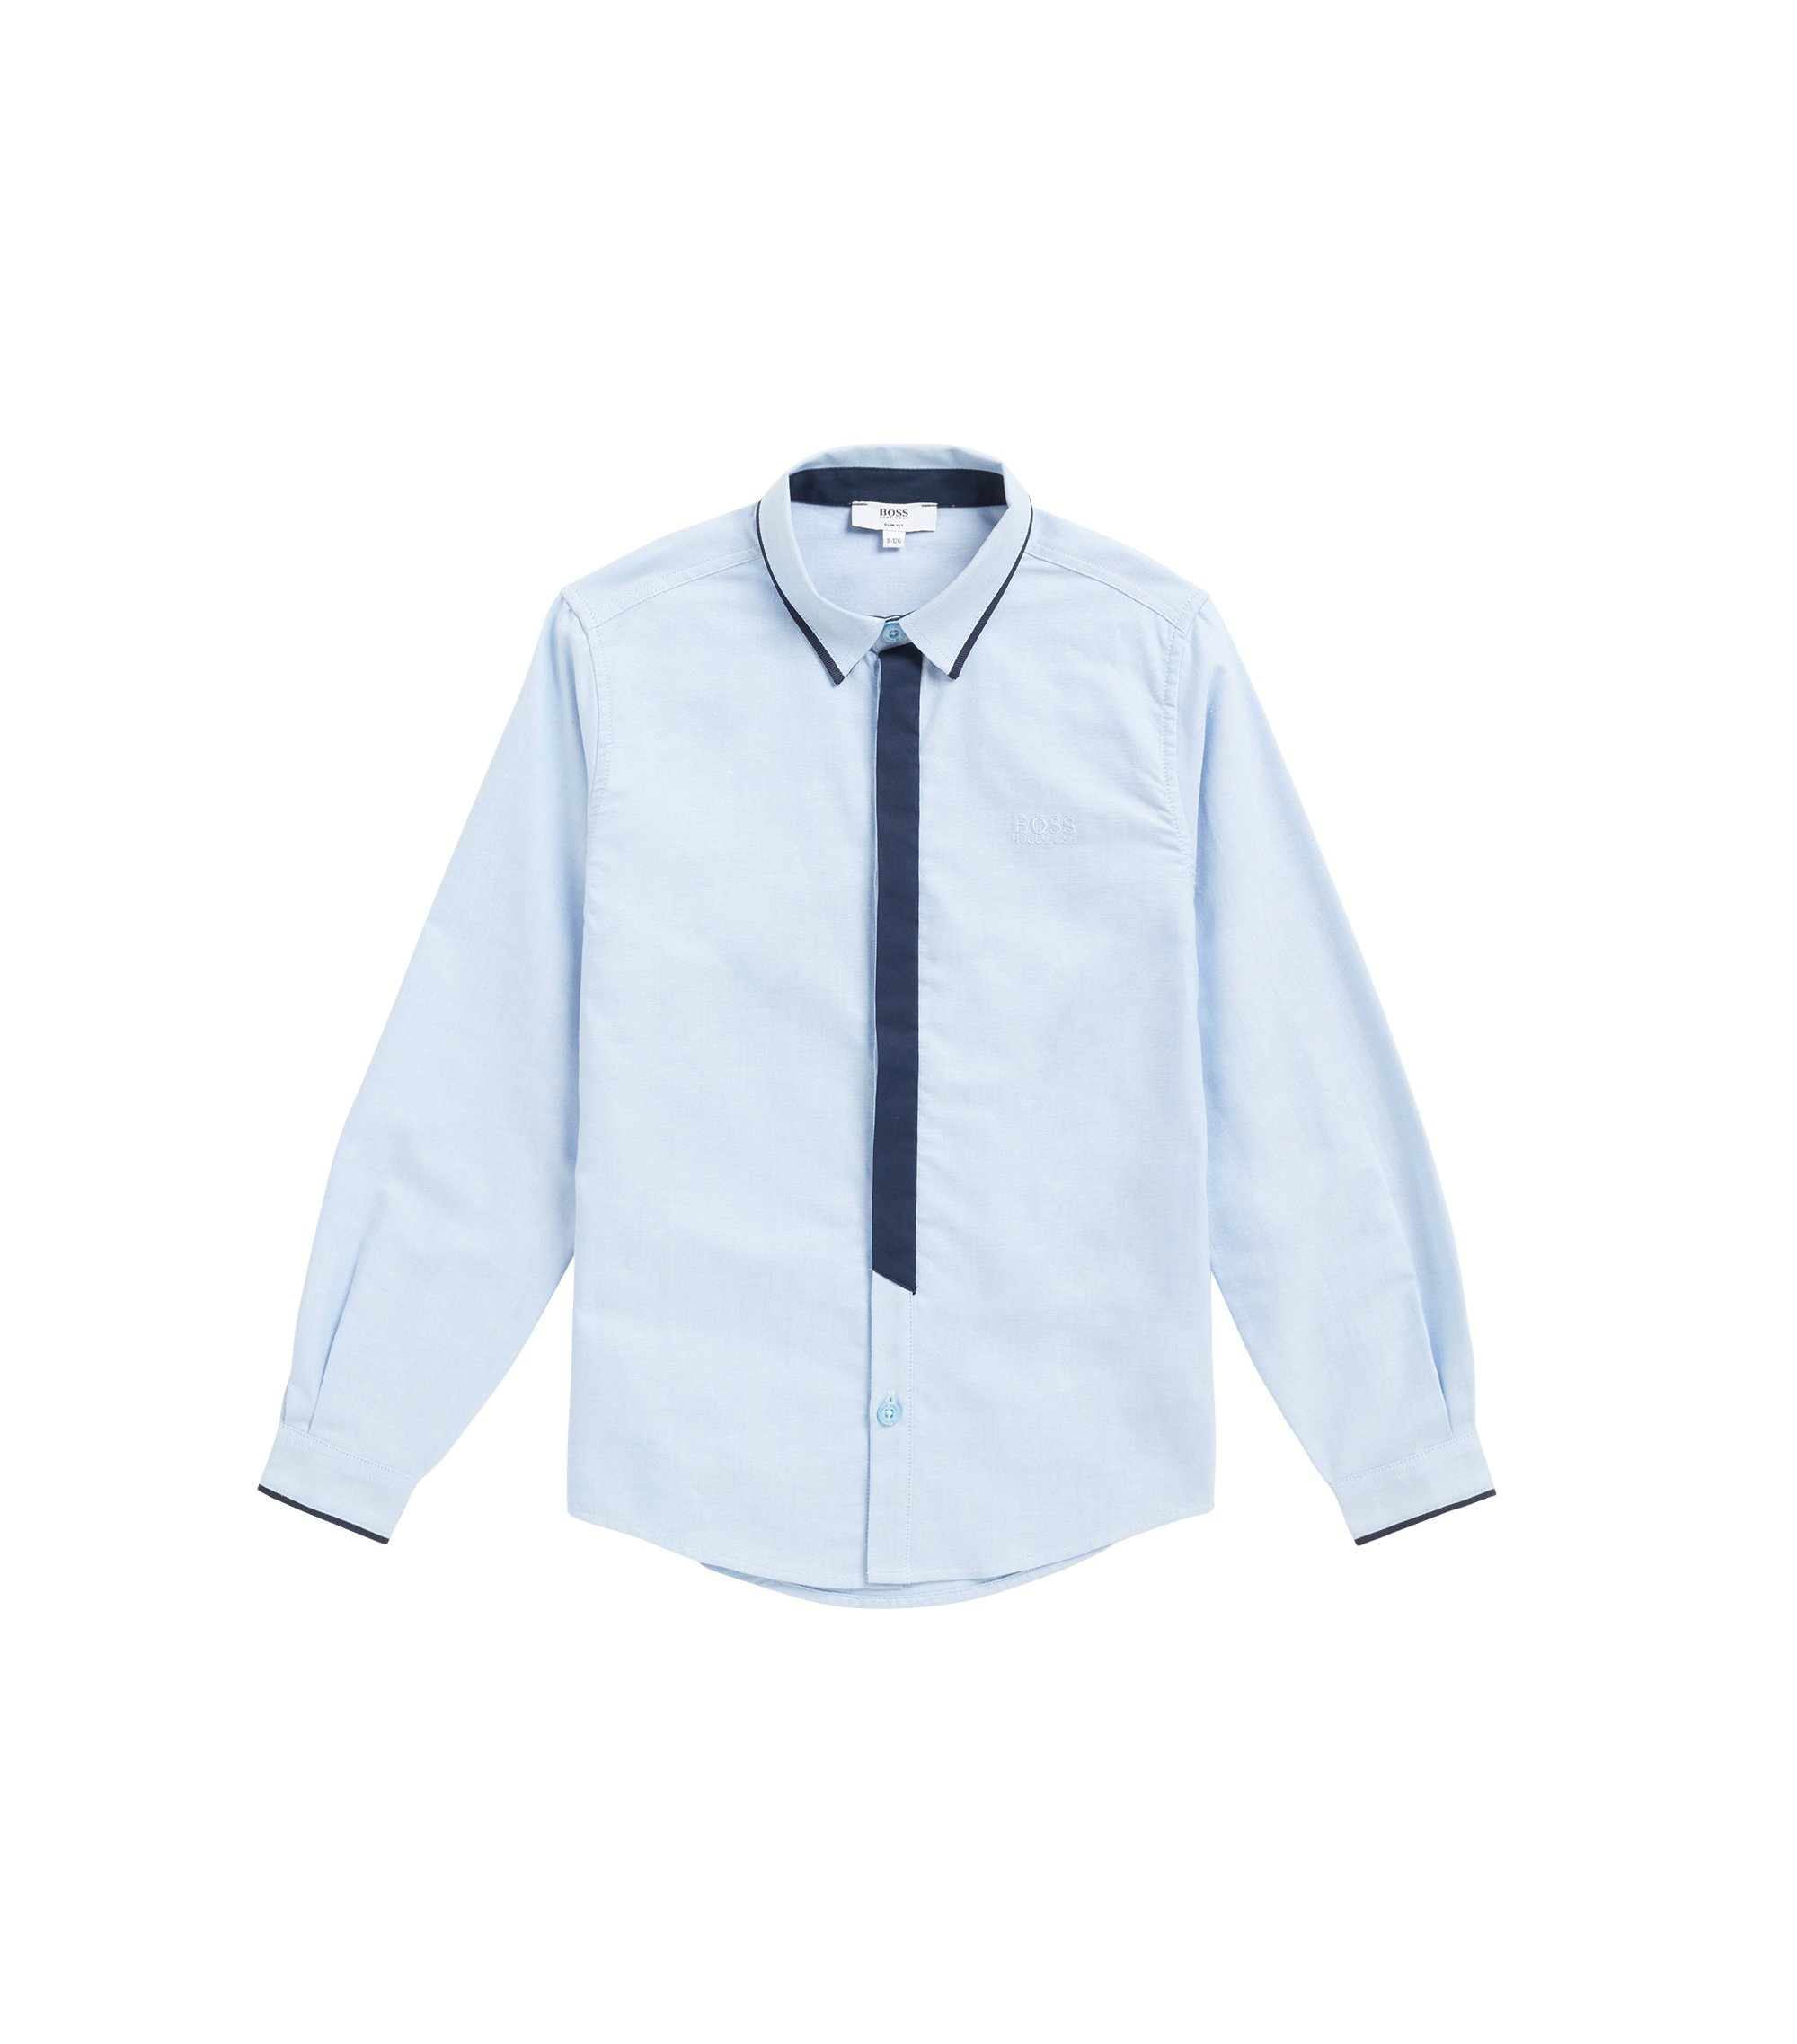 Kids' regular-fit shirt in Oxford cotton with contrast details, Light Blue